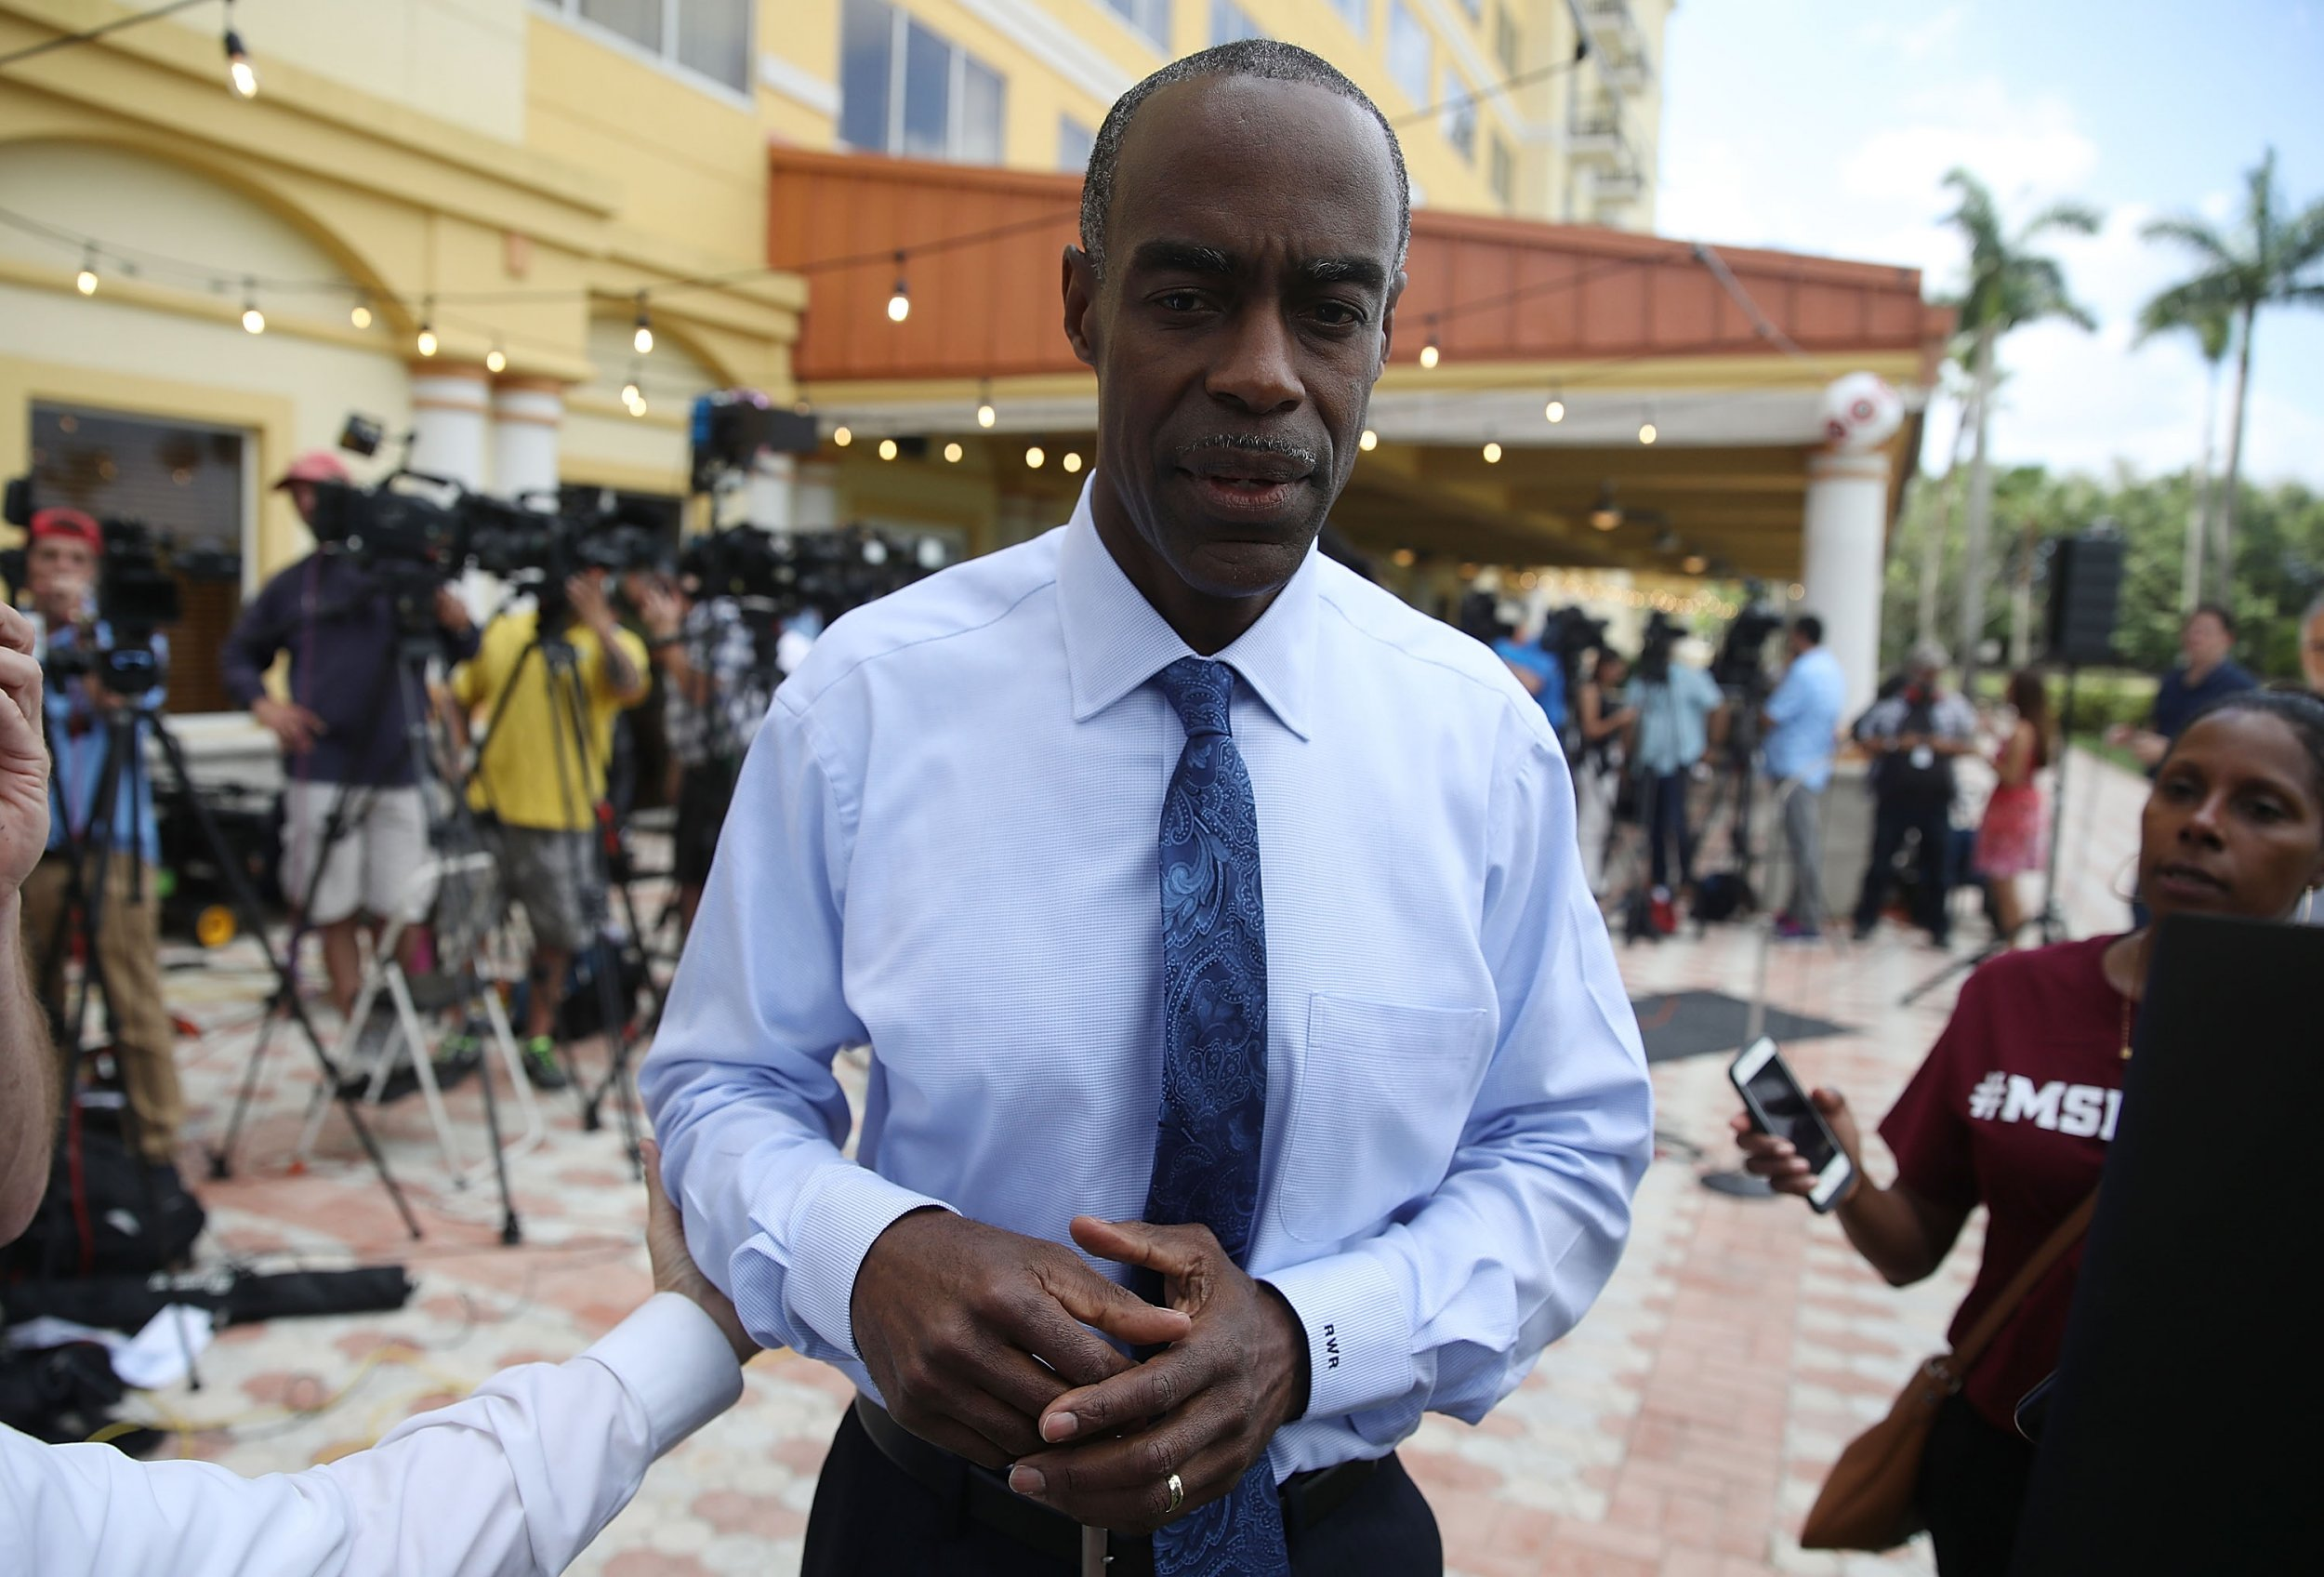 robert runcie broward county naacp parkland shooting racist